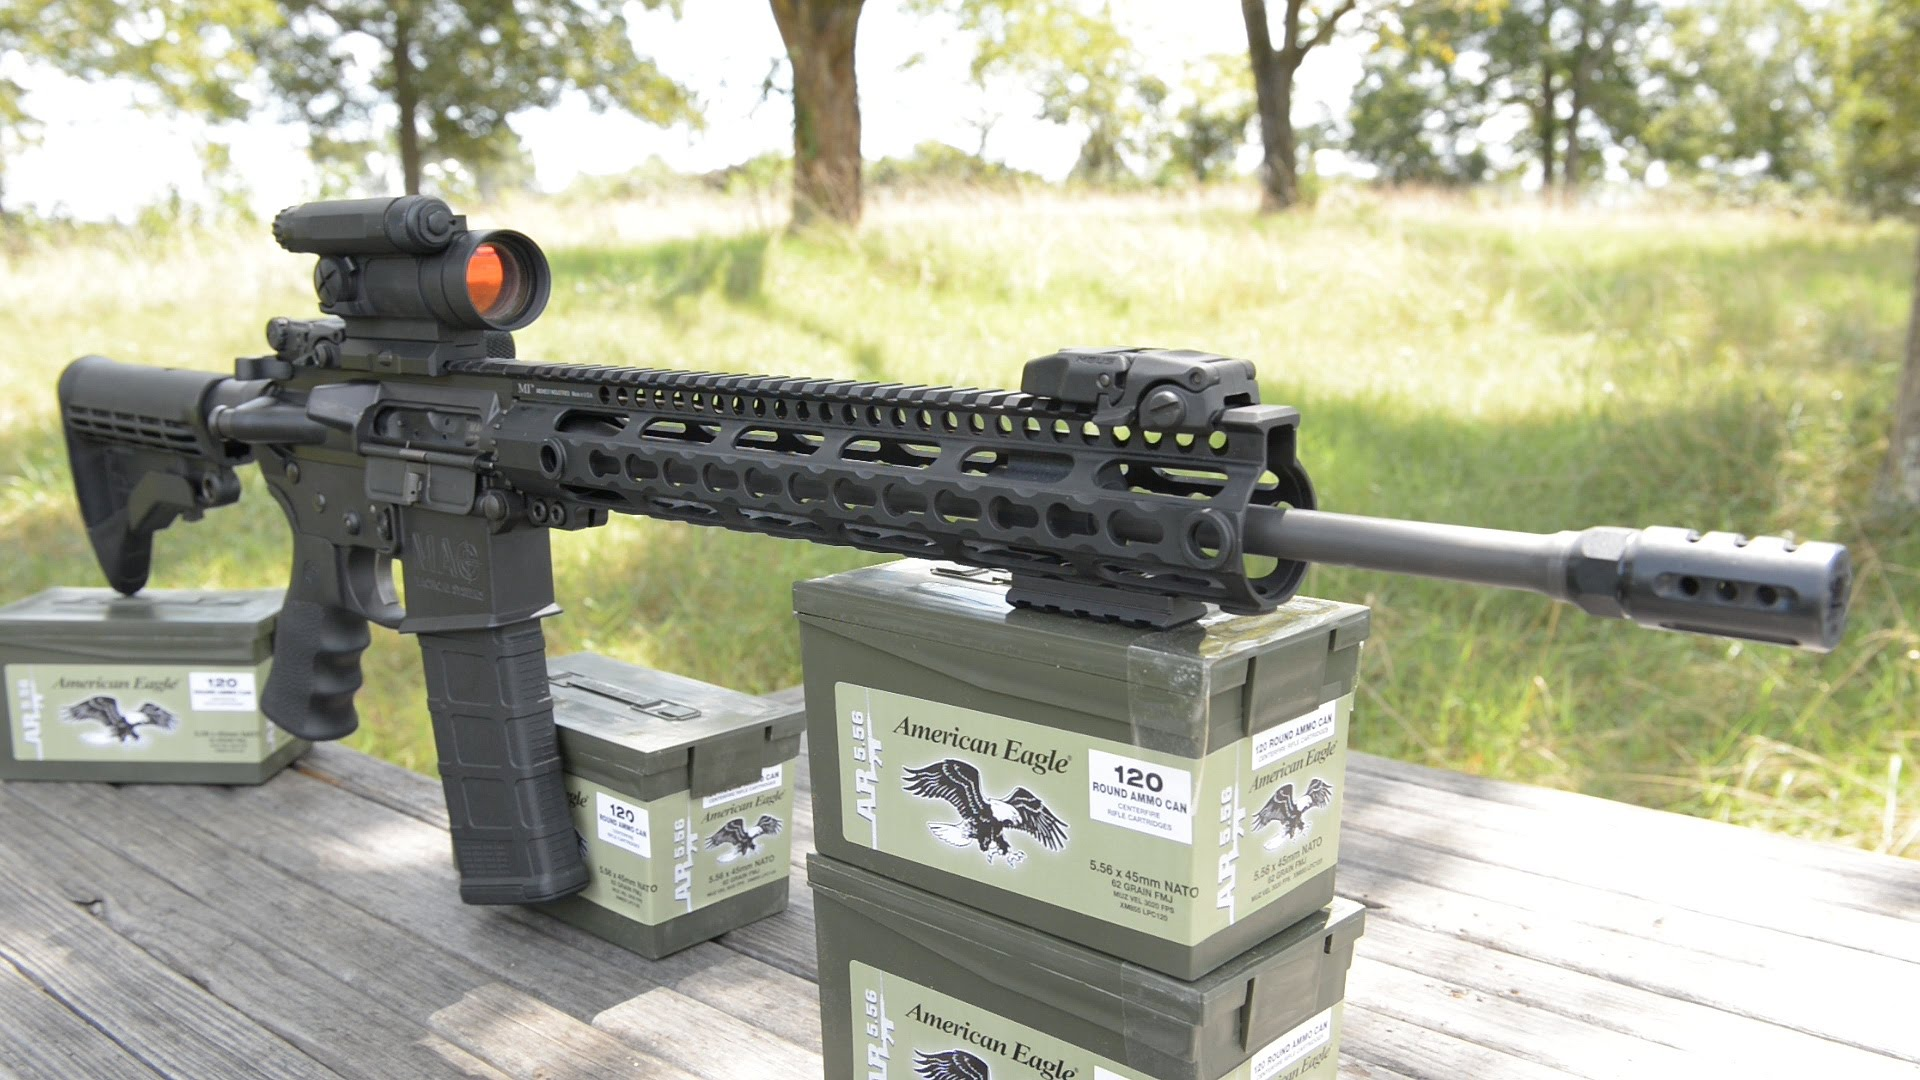 MAG Tactical AIR 15 Recon